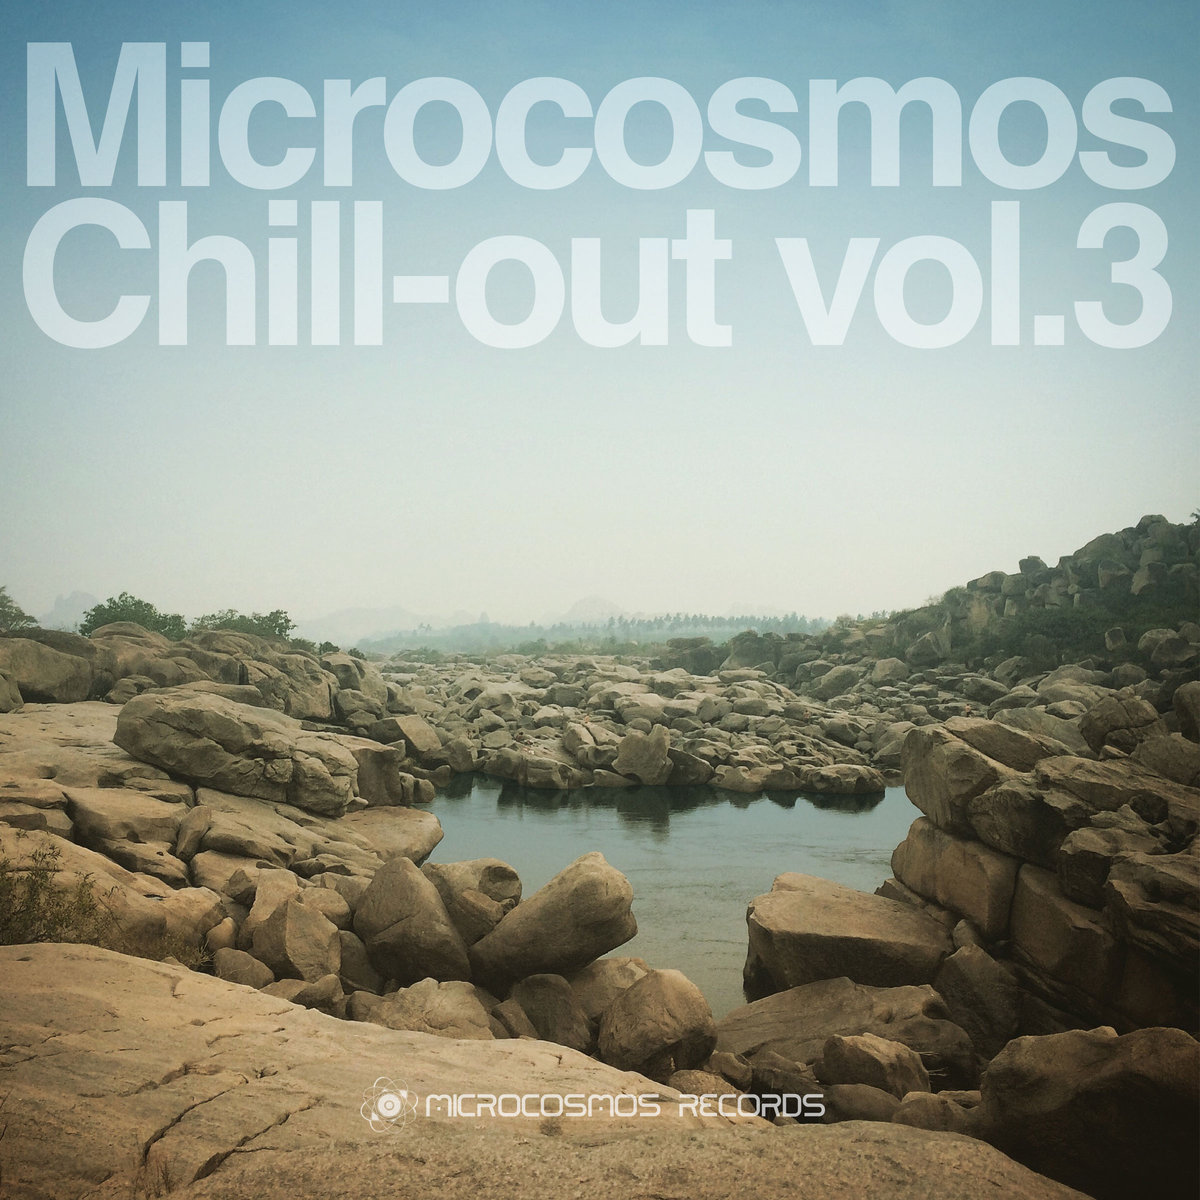 Invisible Inks - Chronos @ 'Microcosmos Chill-out Vol.3' album (ambient, chill-out)